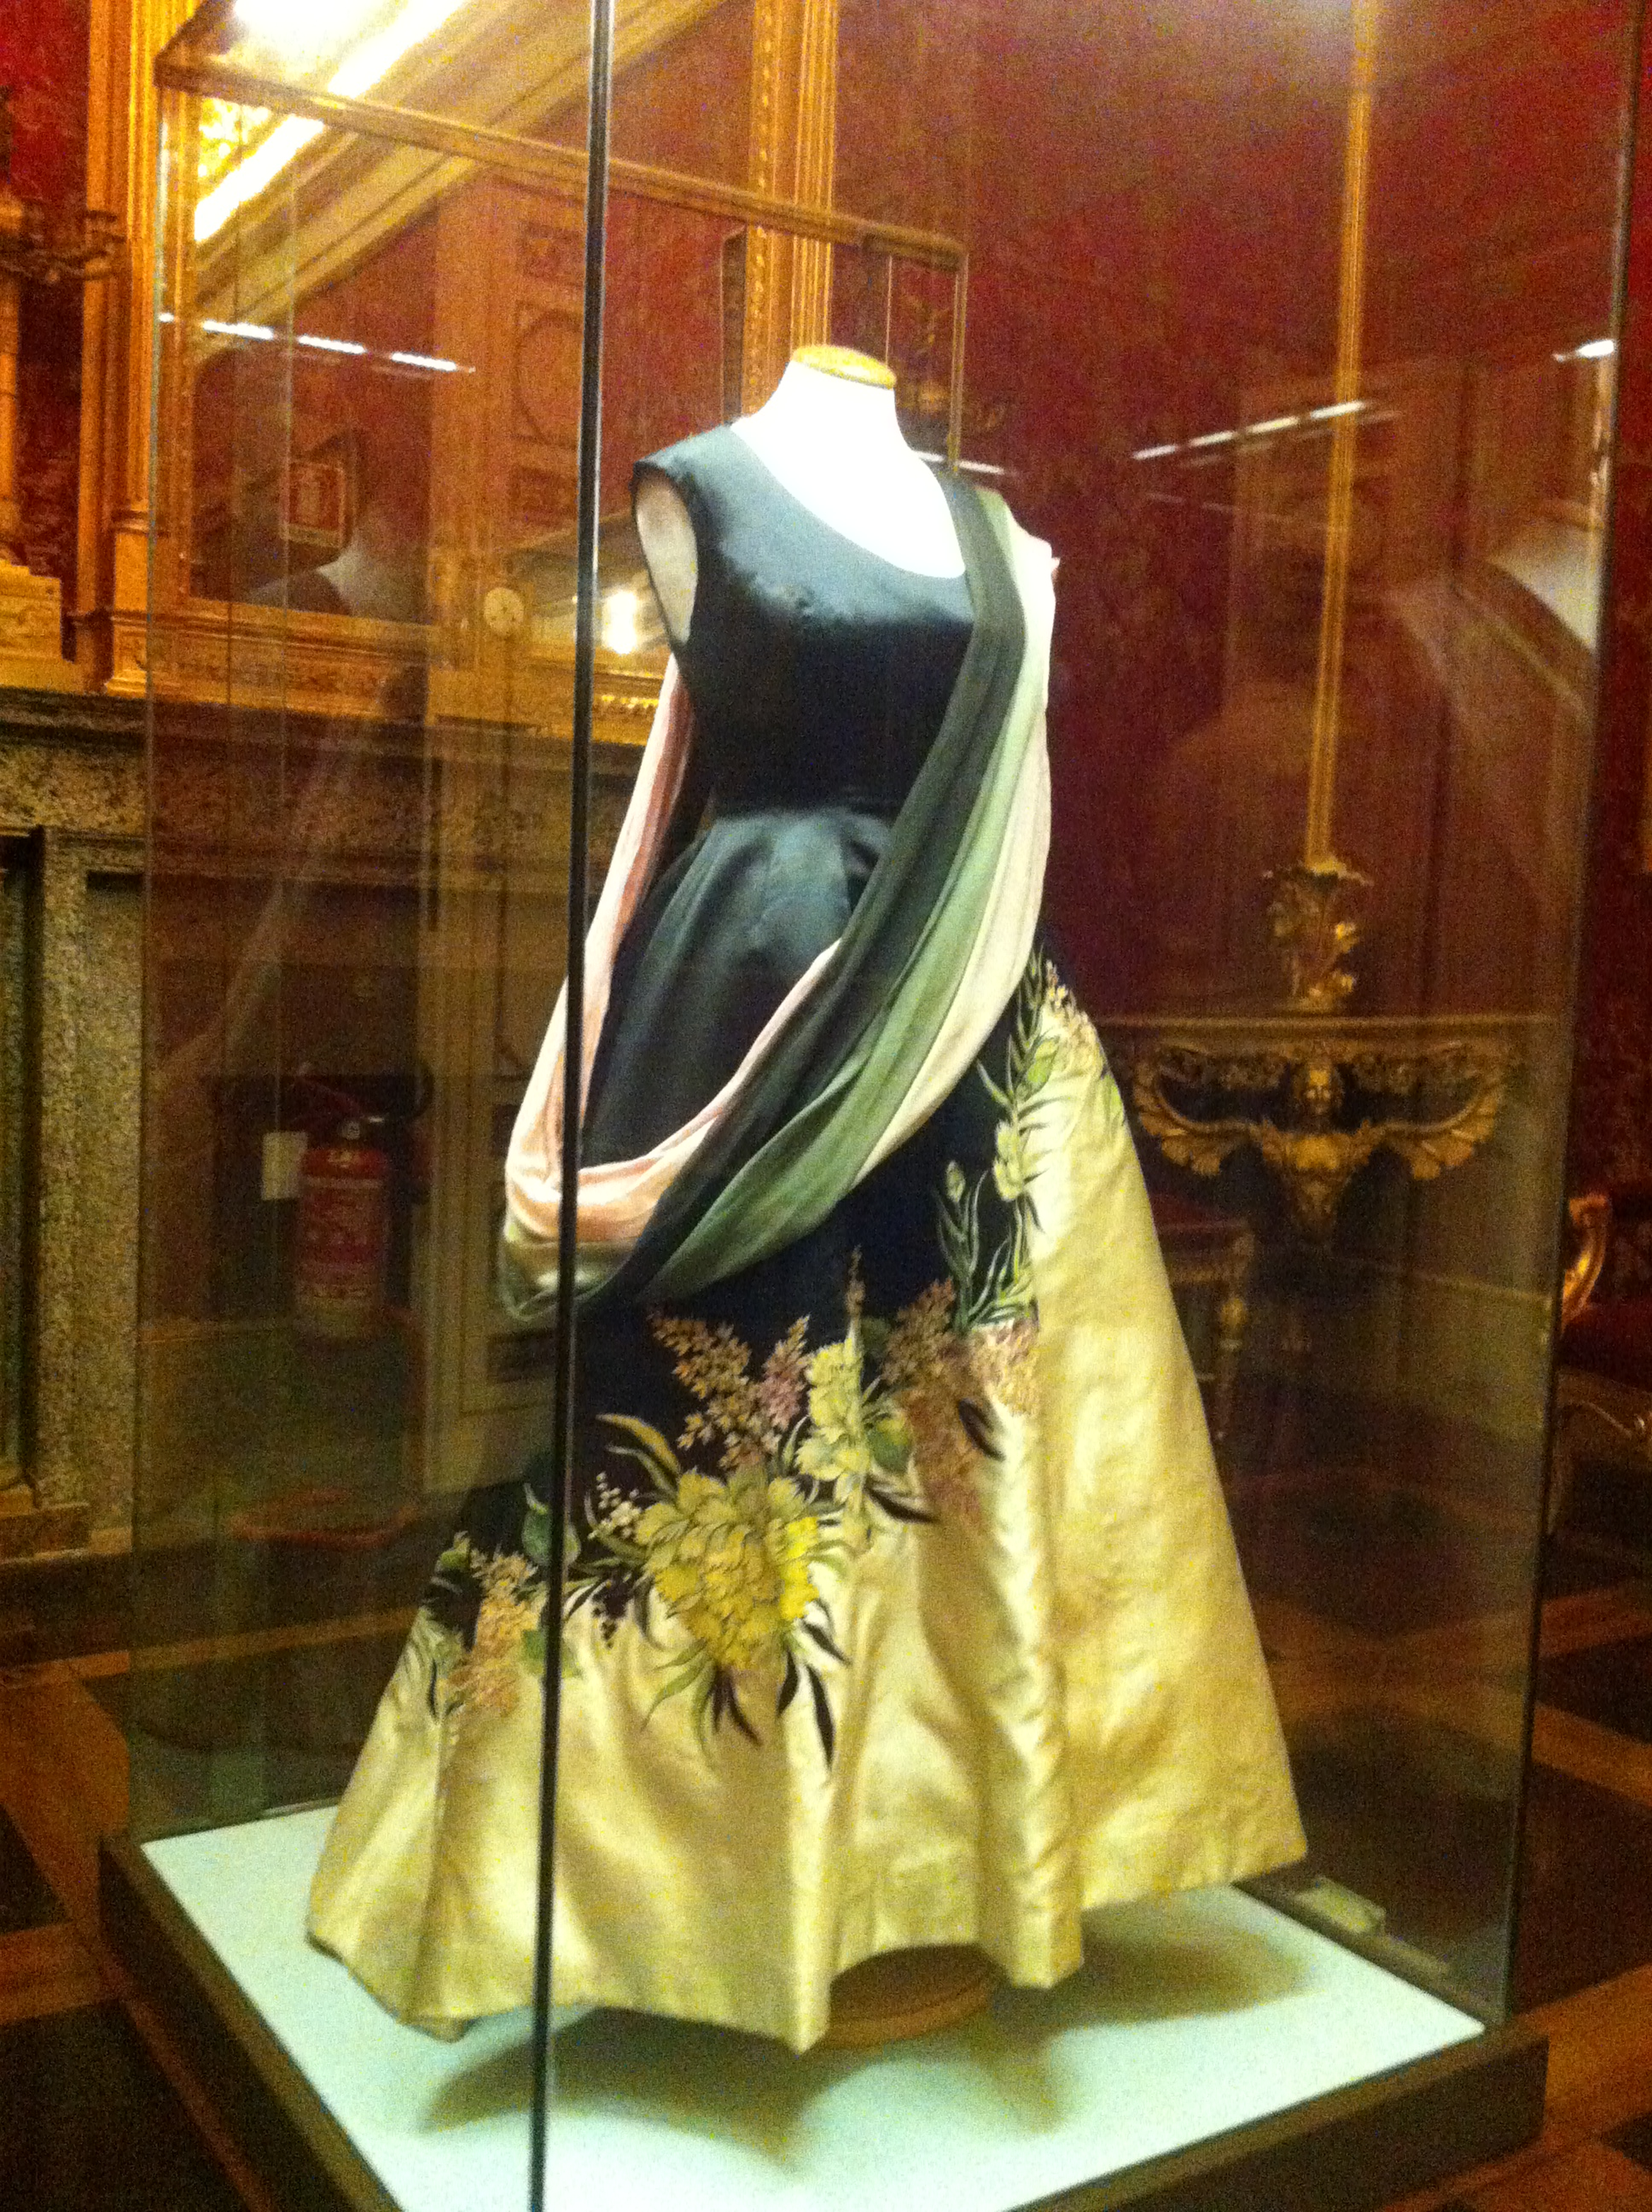 Gallery: The Costume Gallery At Pitti Palace